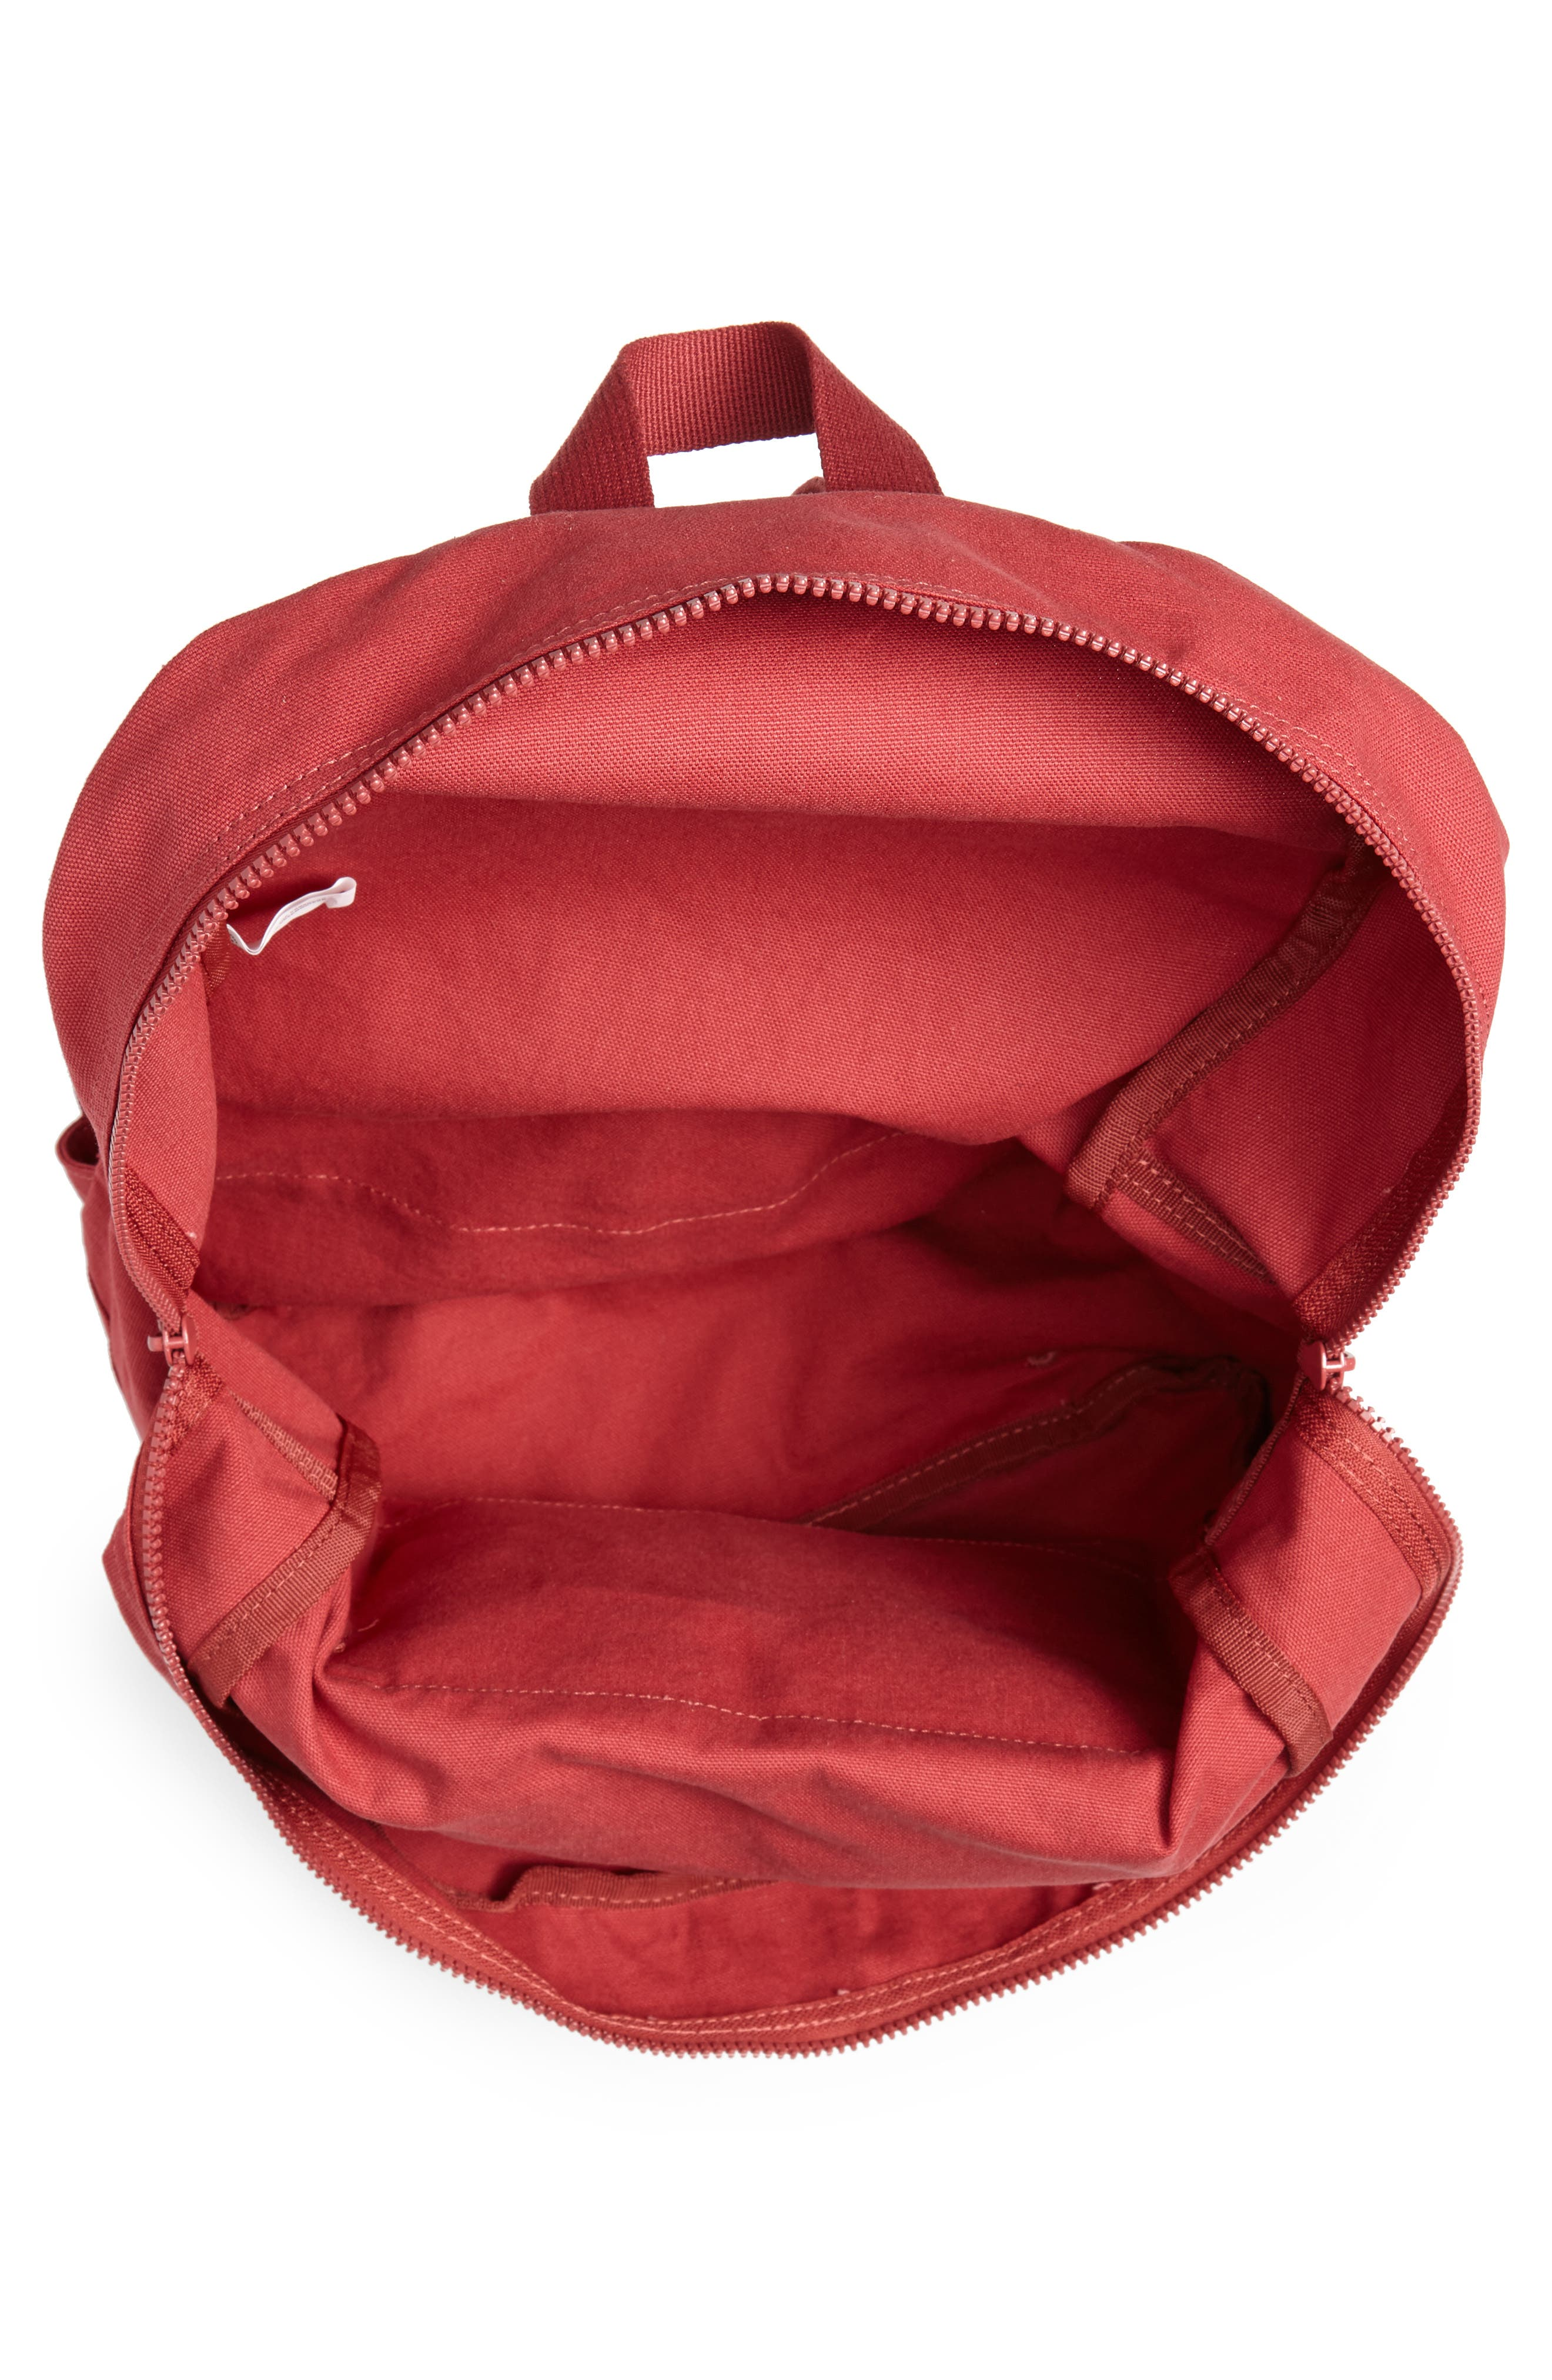 Cotton Casuals Daypack Backpack,                             Alternate thumbnail 30, color,